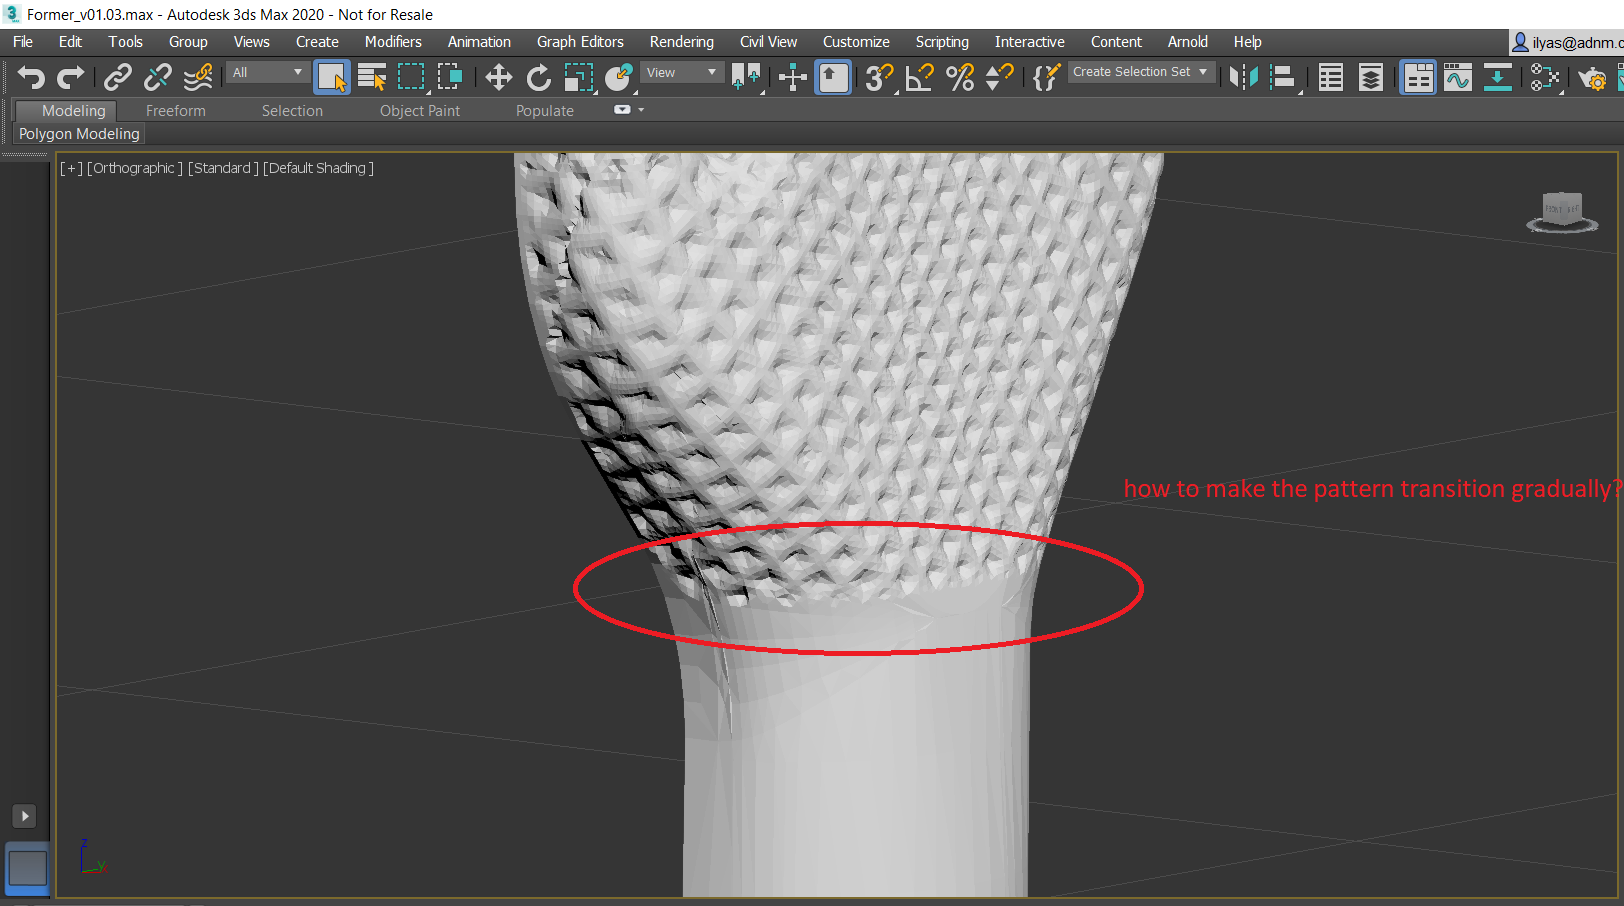 Smoothing out Displaced Mesh at Boundaries - Autodesk Community- 3ds Max